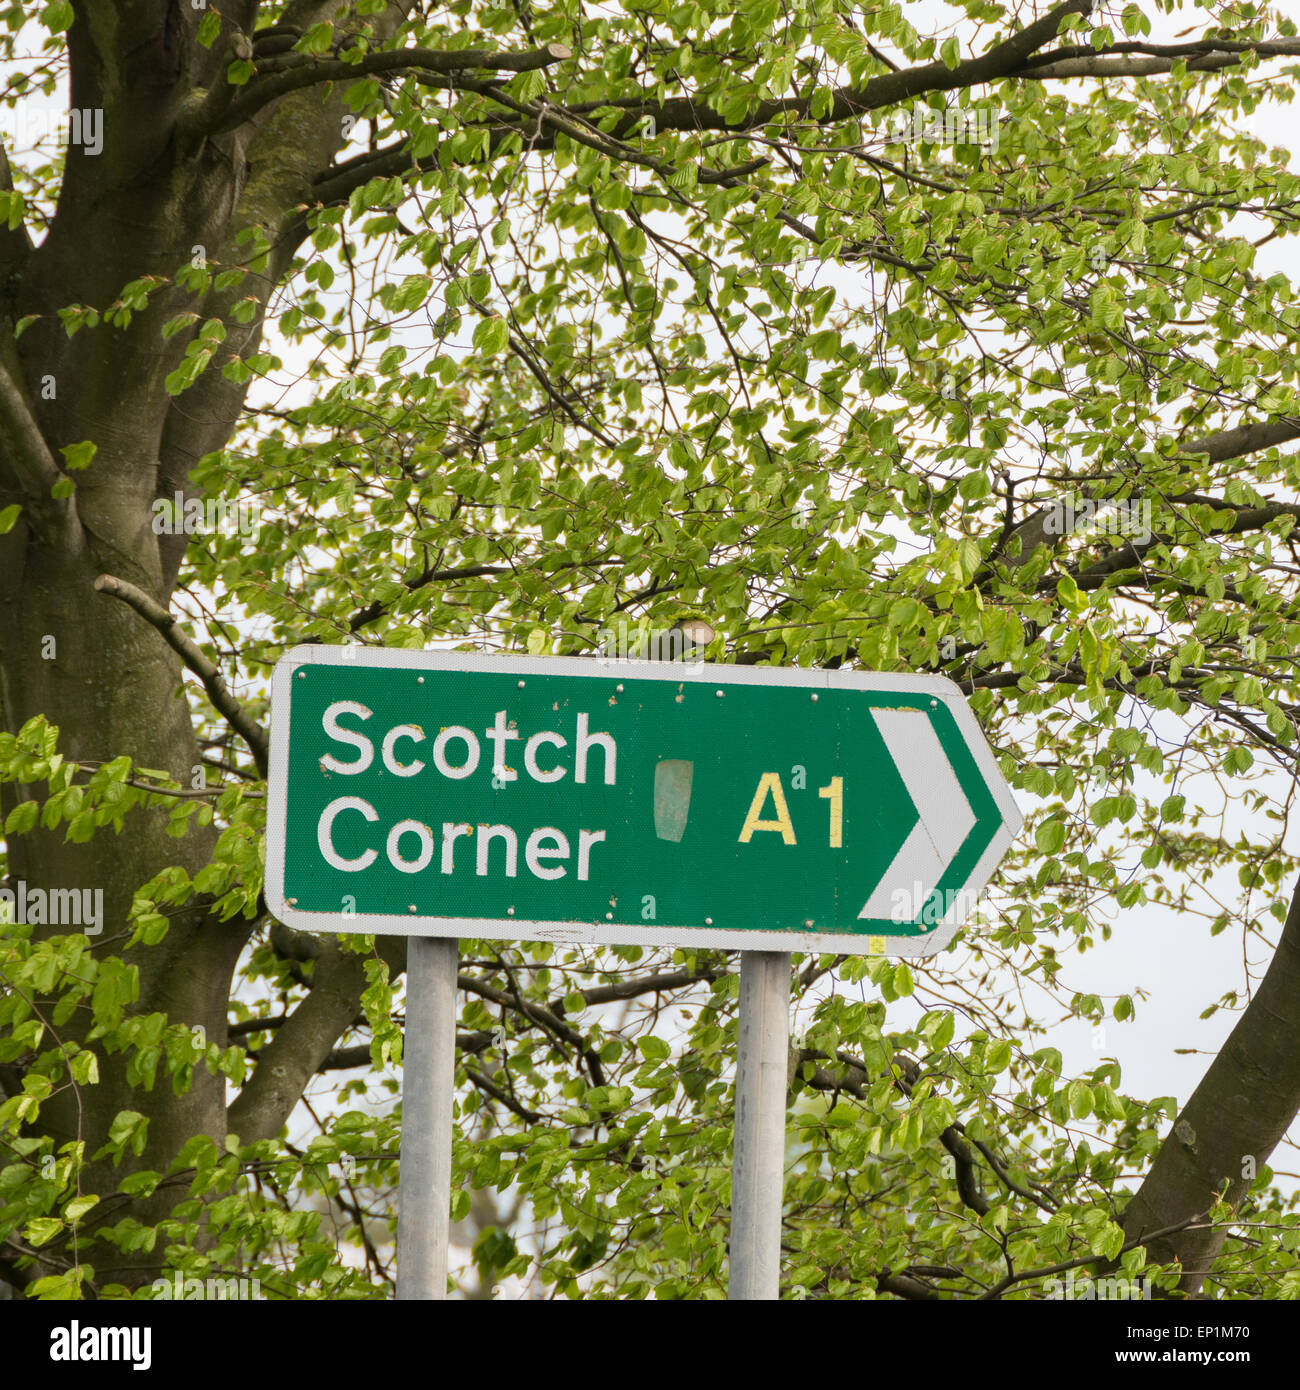 Scotch Corner A1 road sign on a spring day -  North Yorkshire, England, UK - Stock Image